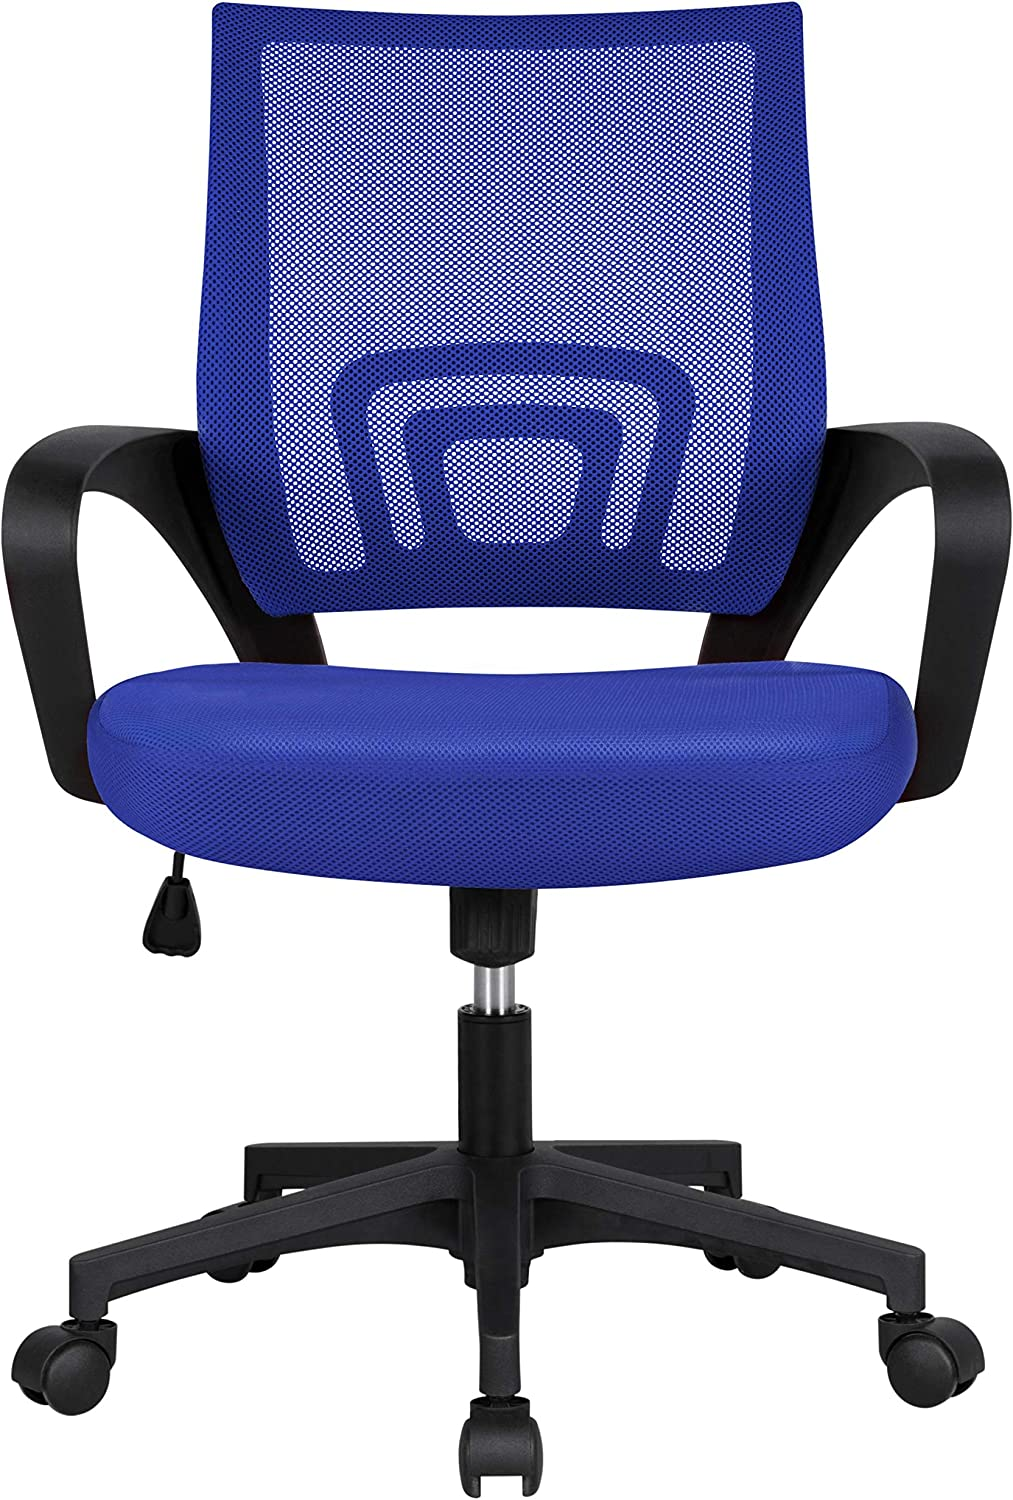 YAHEETECH Home Office Adjustable Mesh Chair, Ergonomic Computer Chair with Lumbar Support for Meeting Room, Bedroom Blue